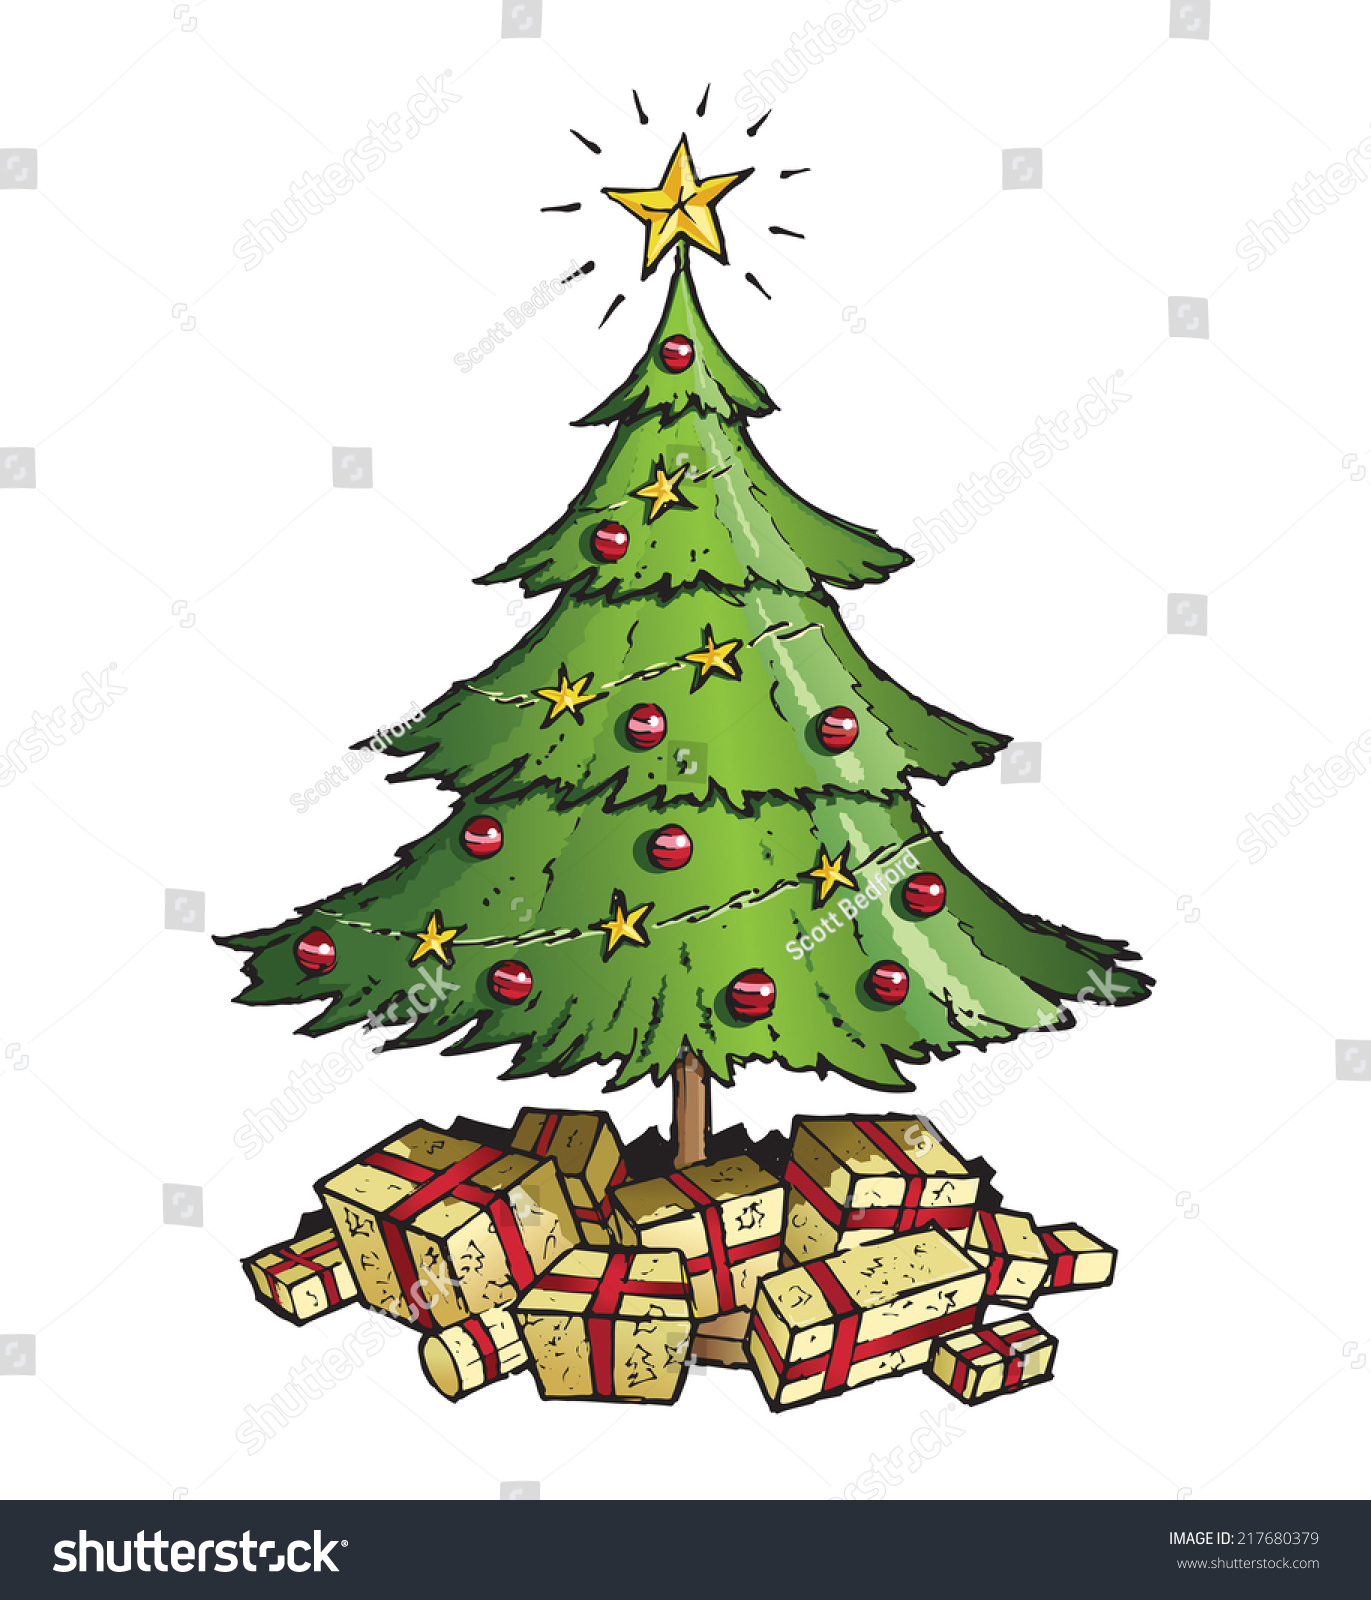 White christmas tree with red and green decorations - Green Christmas Tree Decorated In Gold Stars Red Baubles And With Lots Of Gold Wrapped